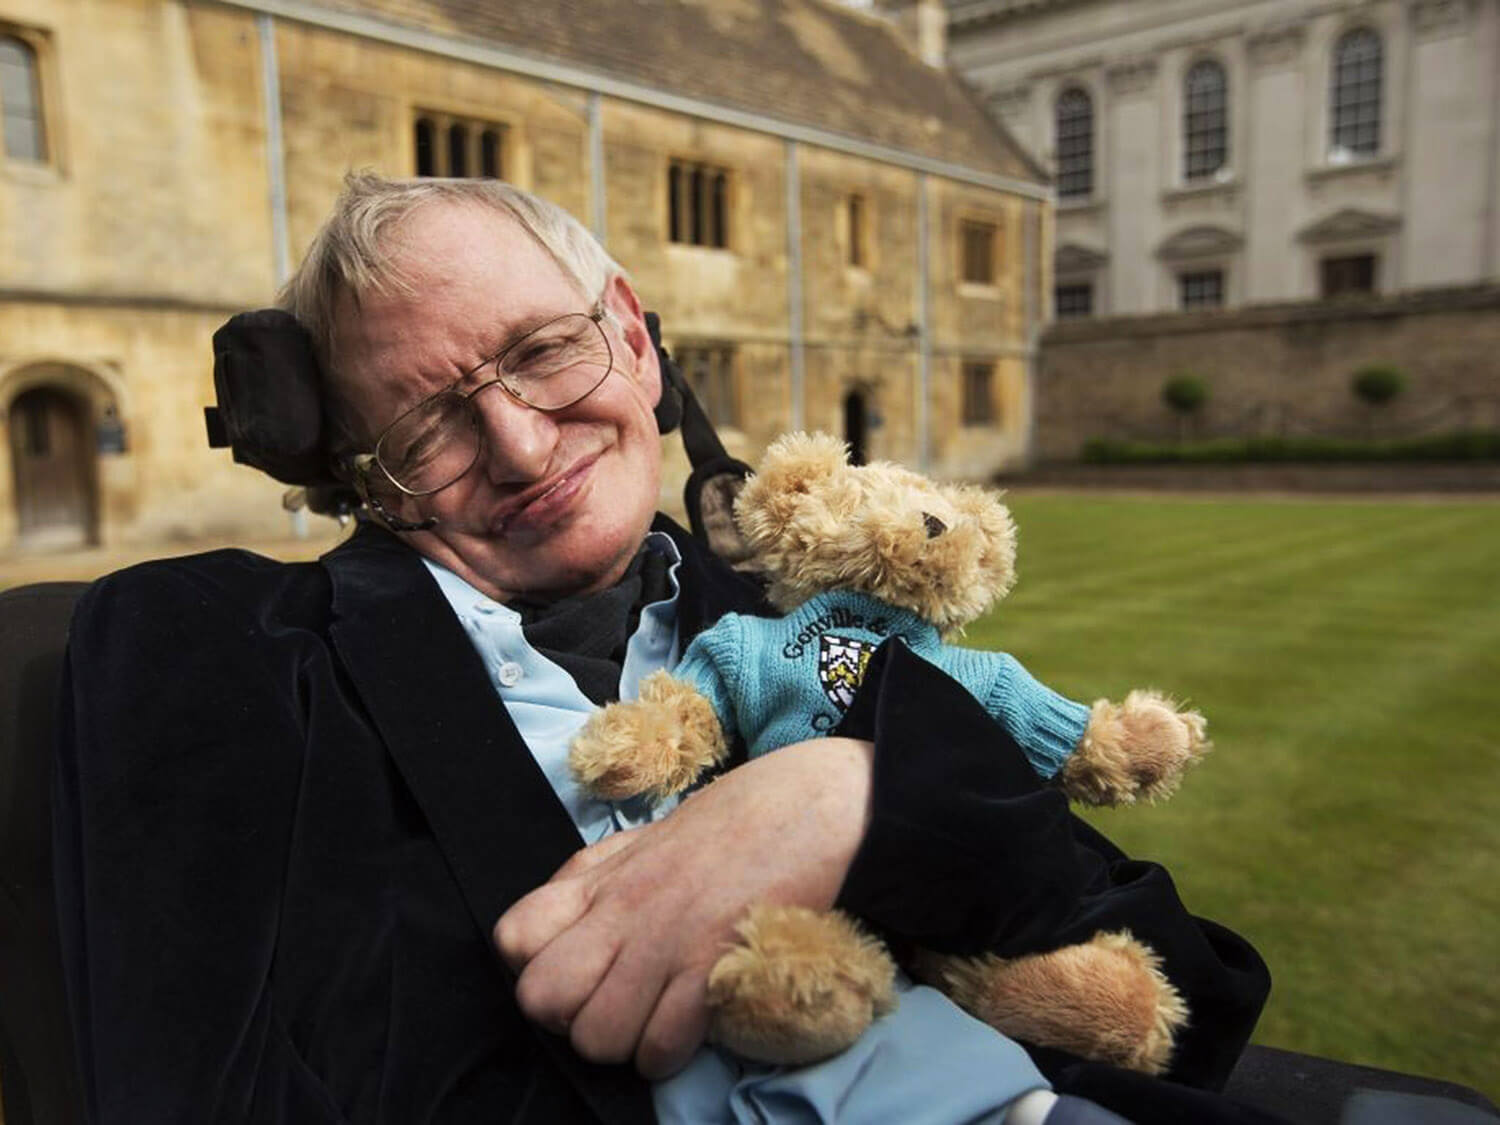 Dr. Stephen Hawking, Brief History of Time